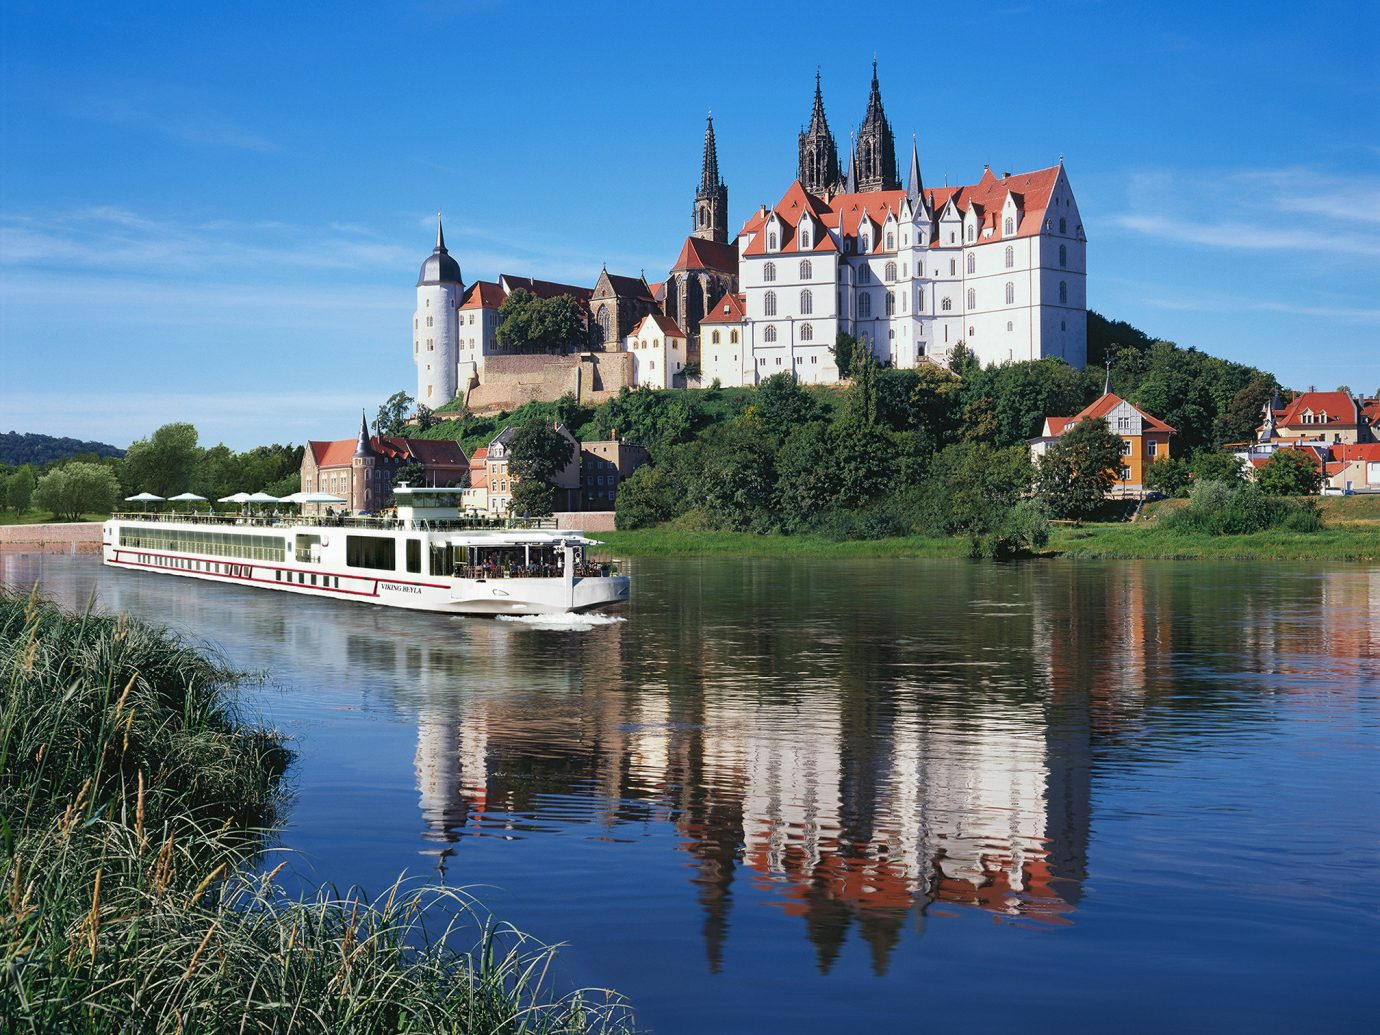 Cruise Travel Luxury Travel outdoor sky water reflection waterway River bank tree City plant house Canal Lake water castle tourist attraction fluvial landforms of streams watercourse château building evening reservoir landscape surrounded